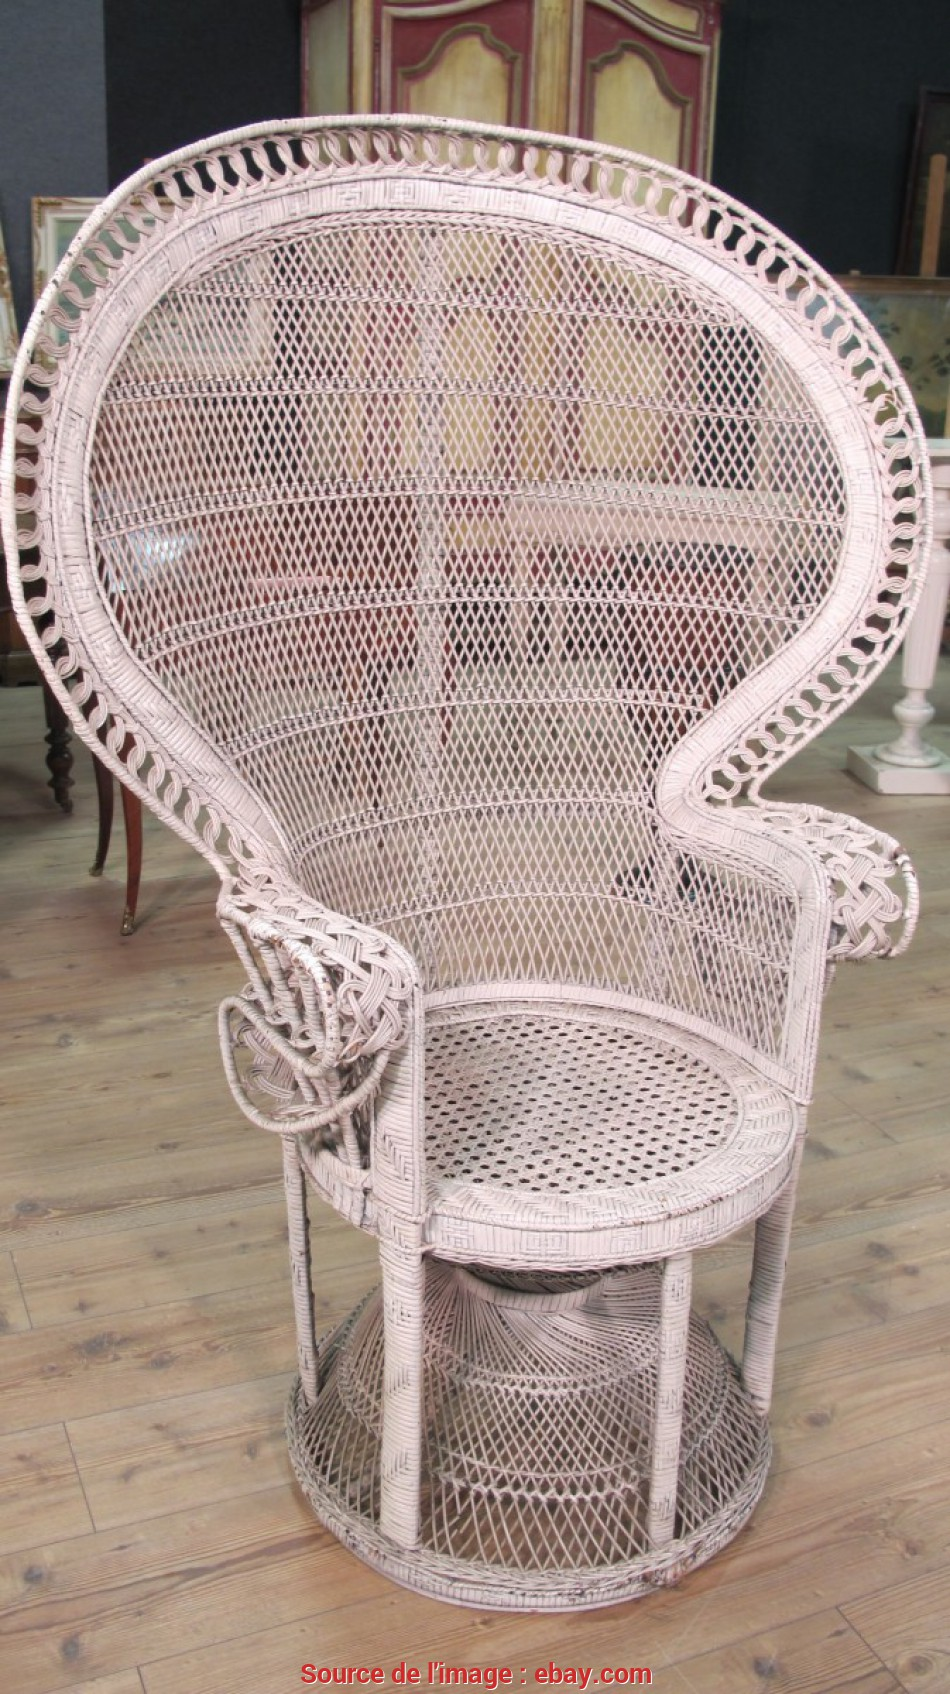 Nuovo Details About Armchair Wicker Rattan Furniture Antique Style Vintage Chair Outdoor Antique